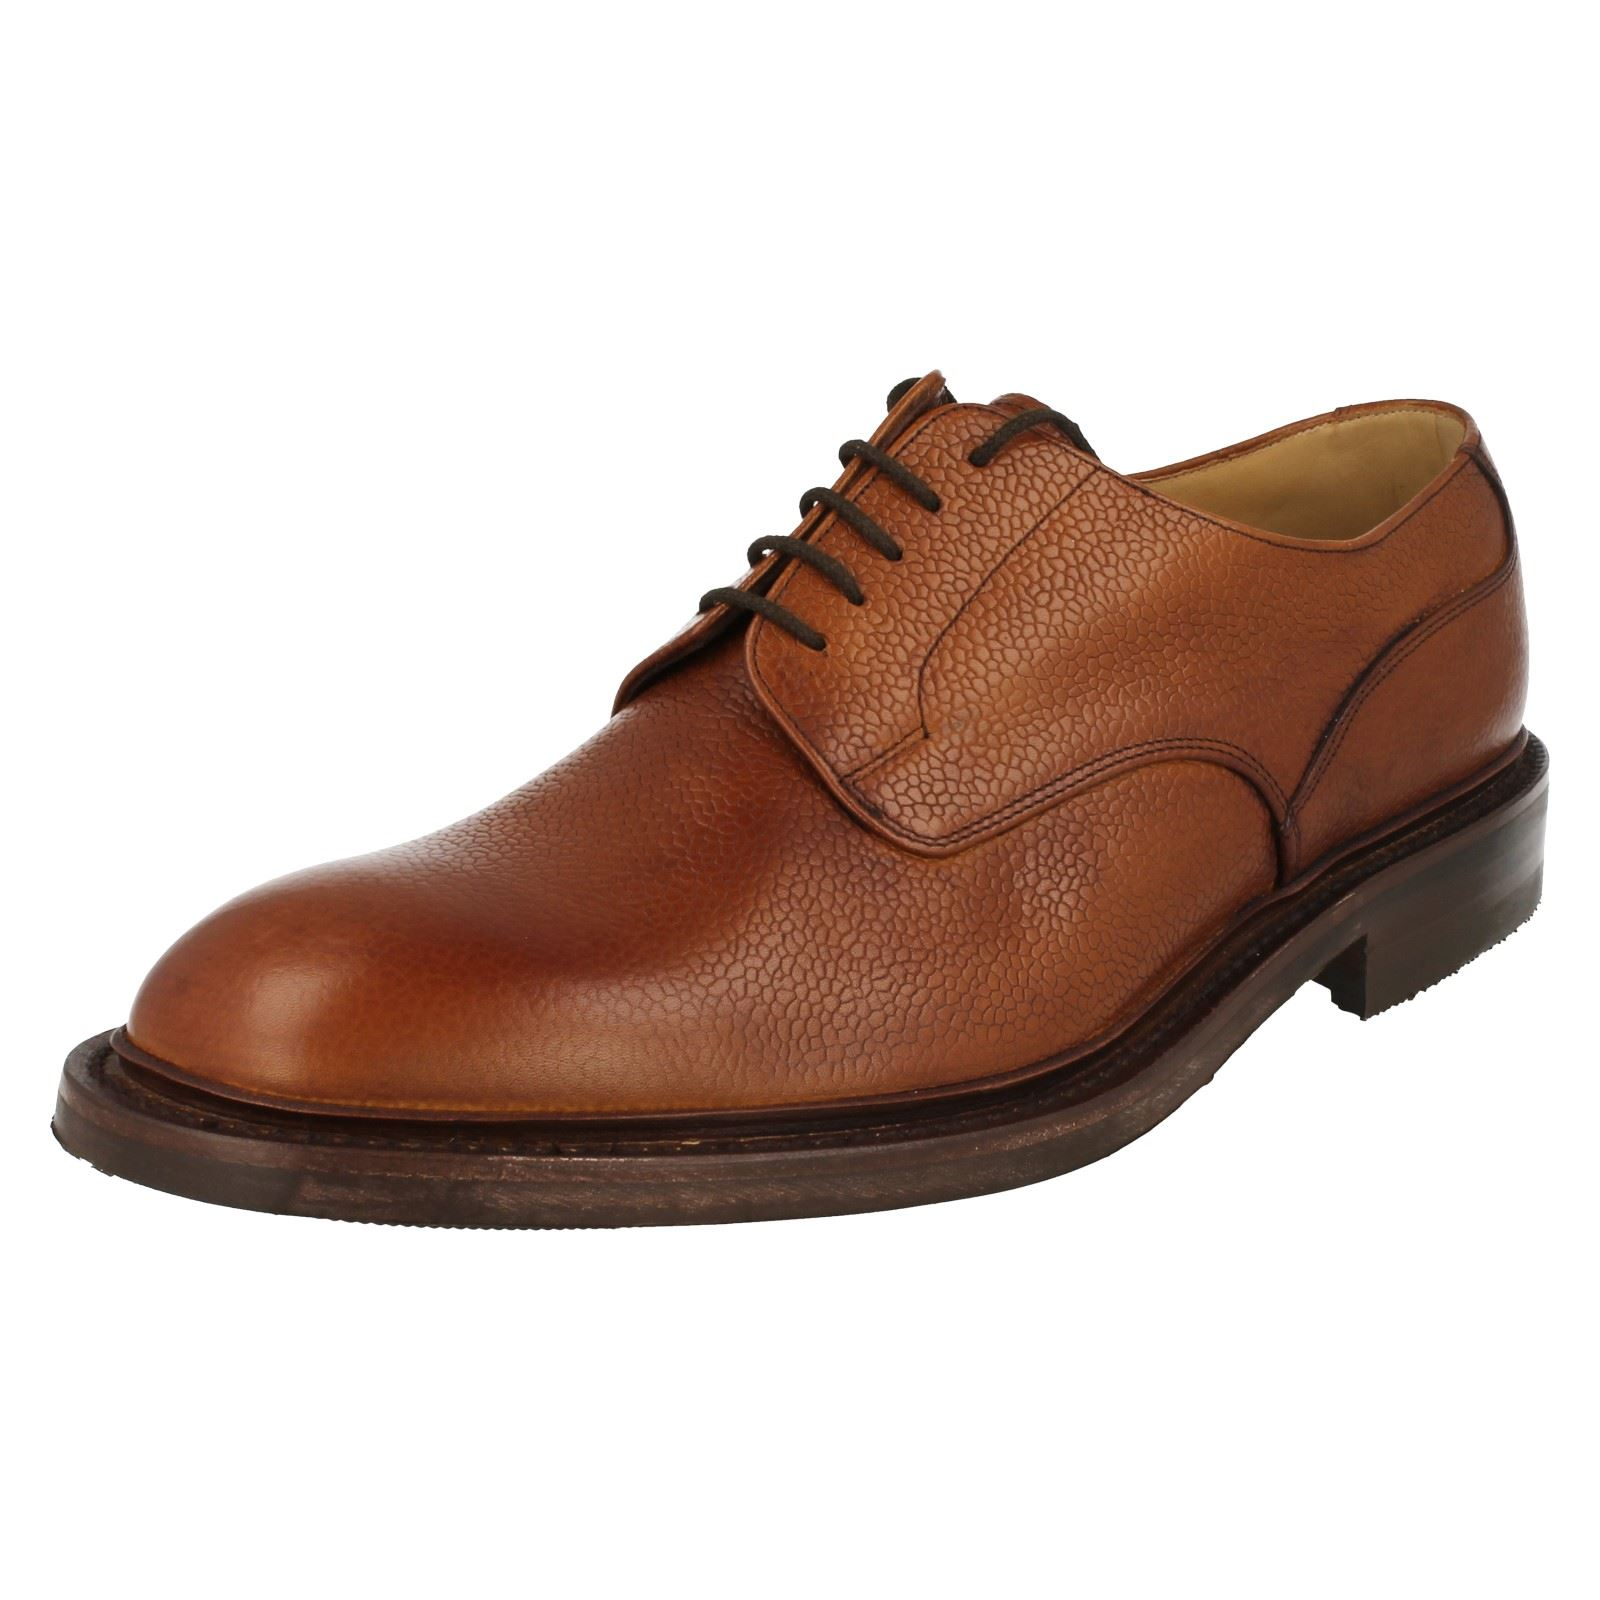 Loake Formal Mens Lace Up Shoes Stamford